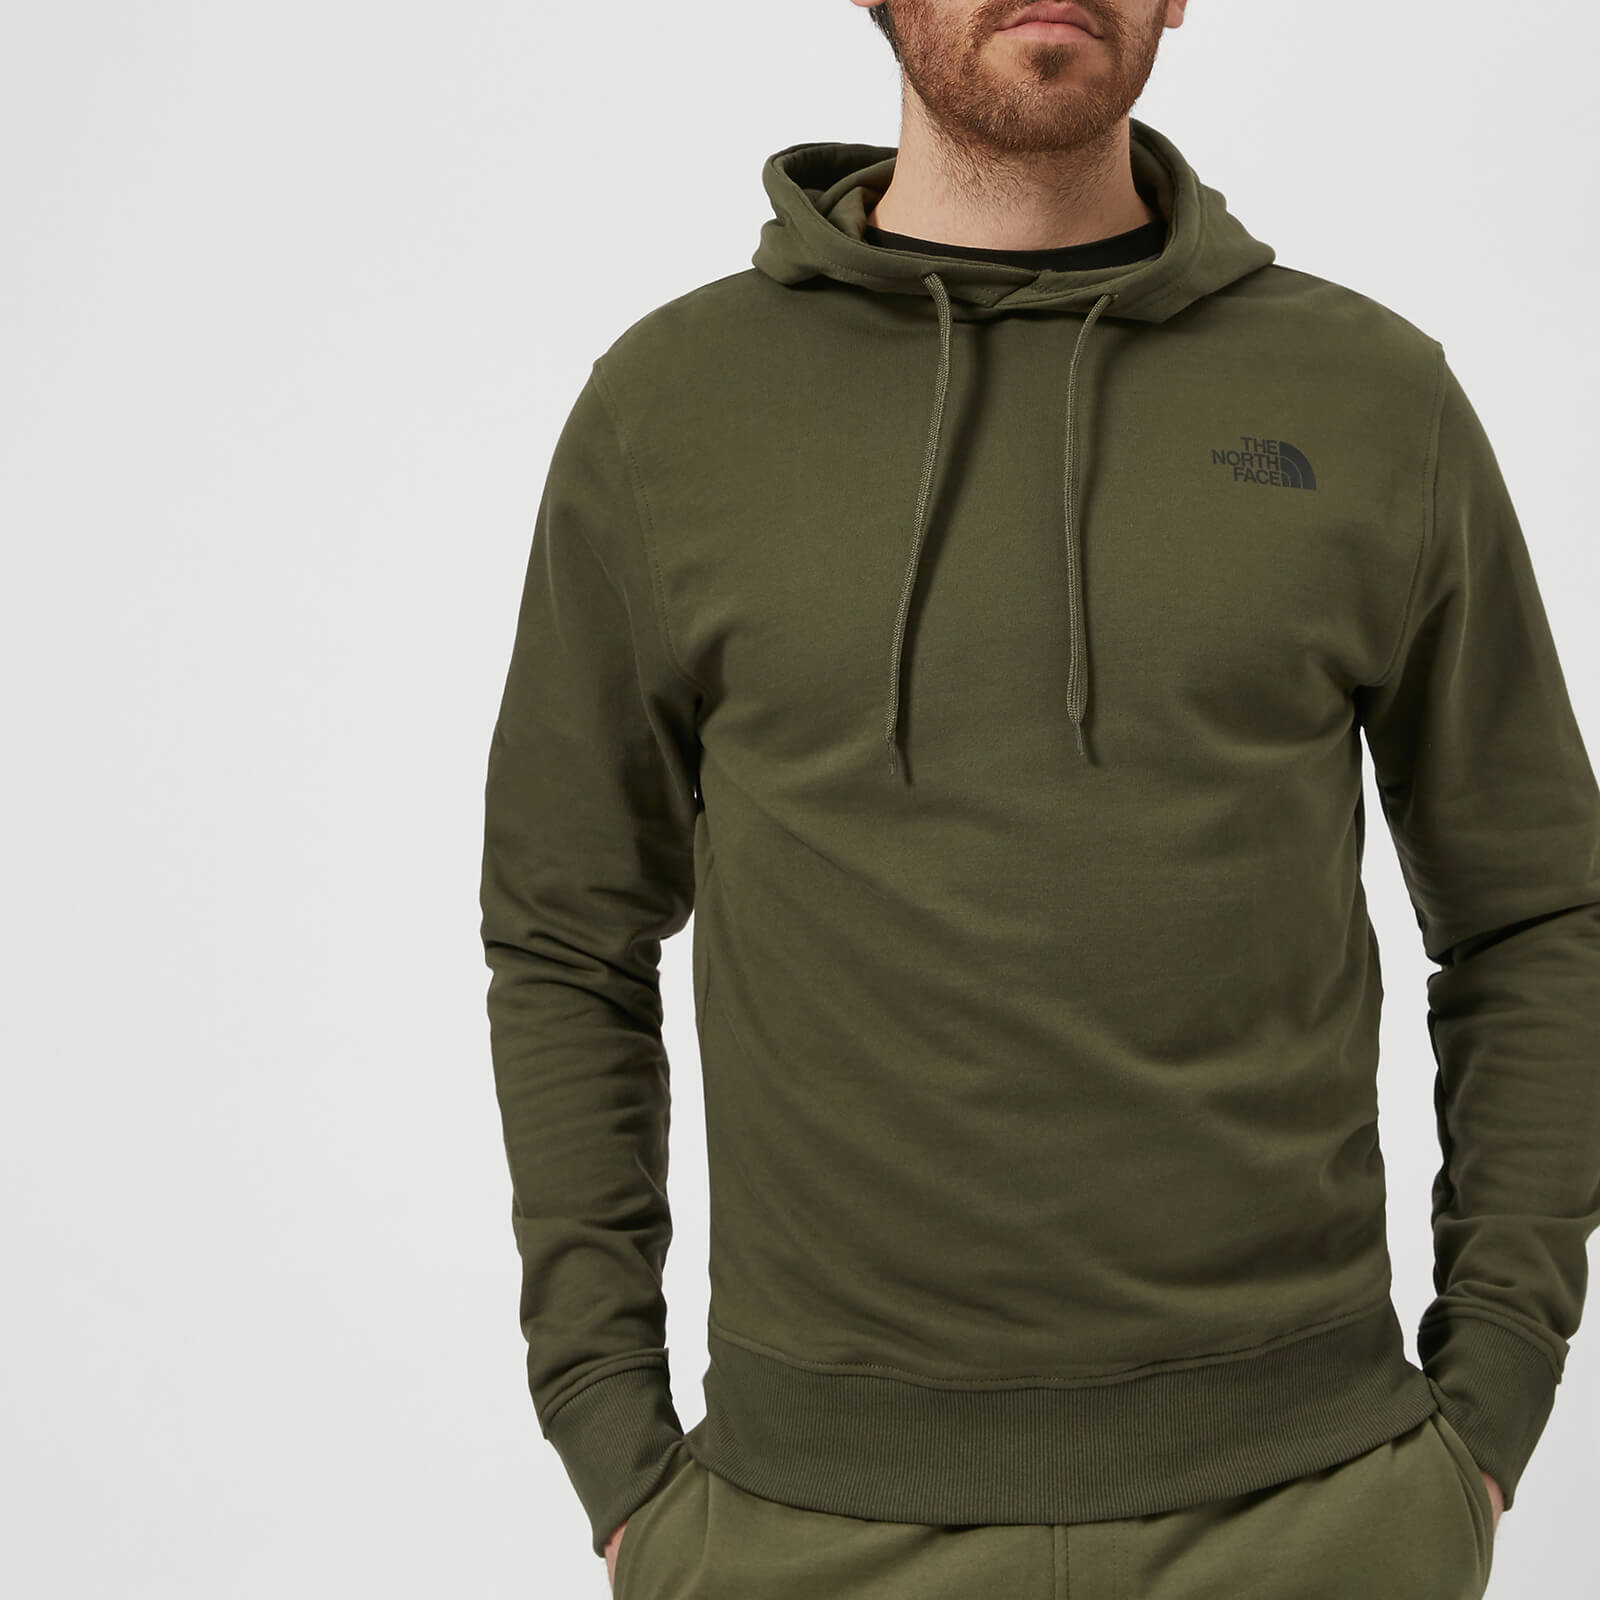 d1e4627b8 The North Face Men's Seasonal Drew Peak Pullover Light Hoodie - New Taupe  Green